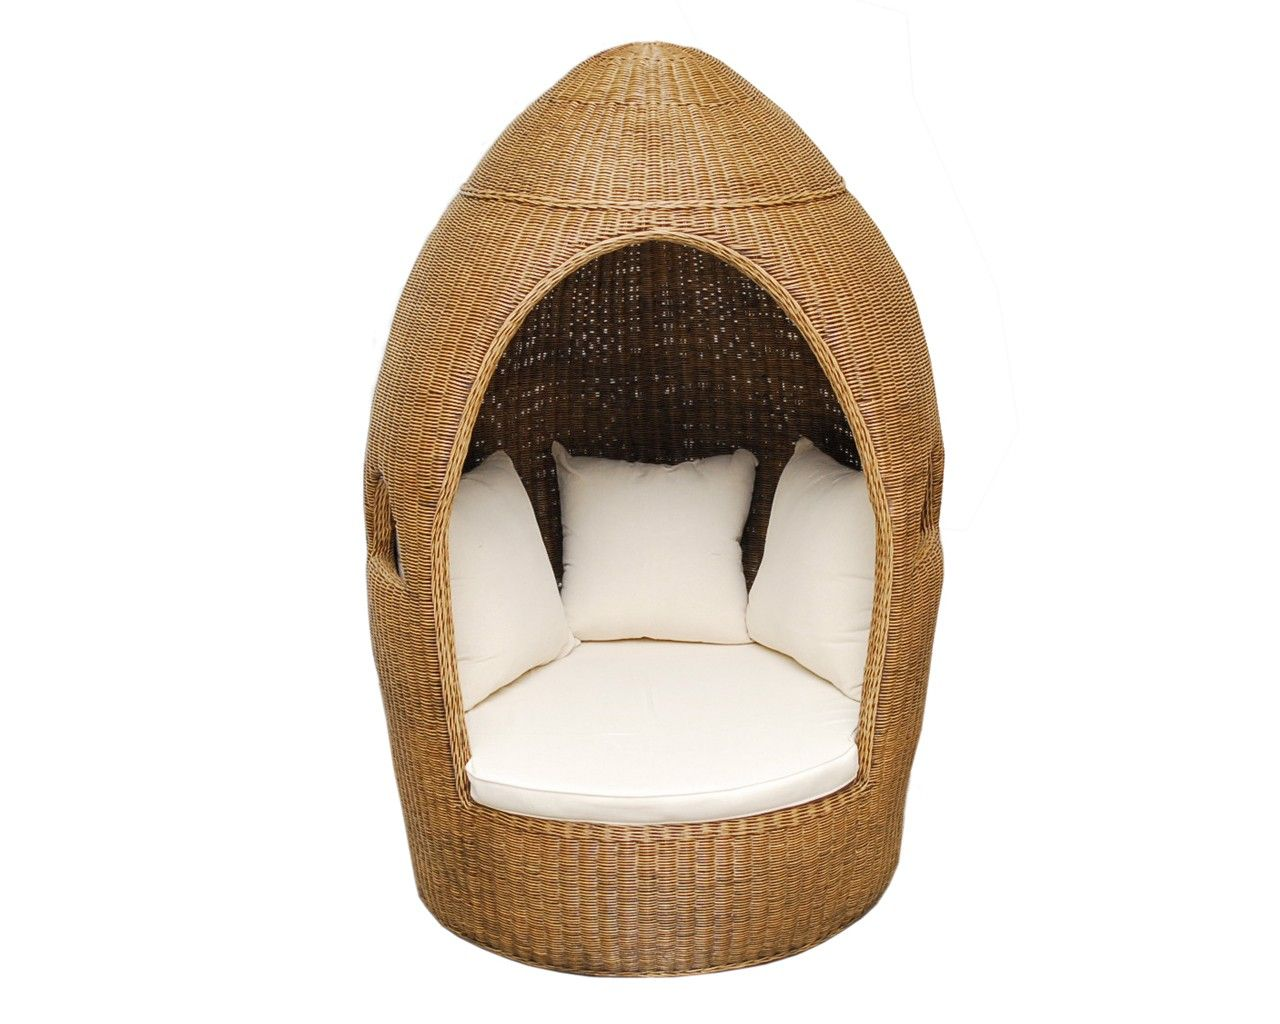 This Impressive Egg Chair Is Hand Woven From Rattan And